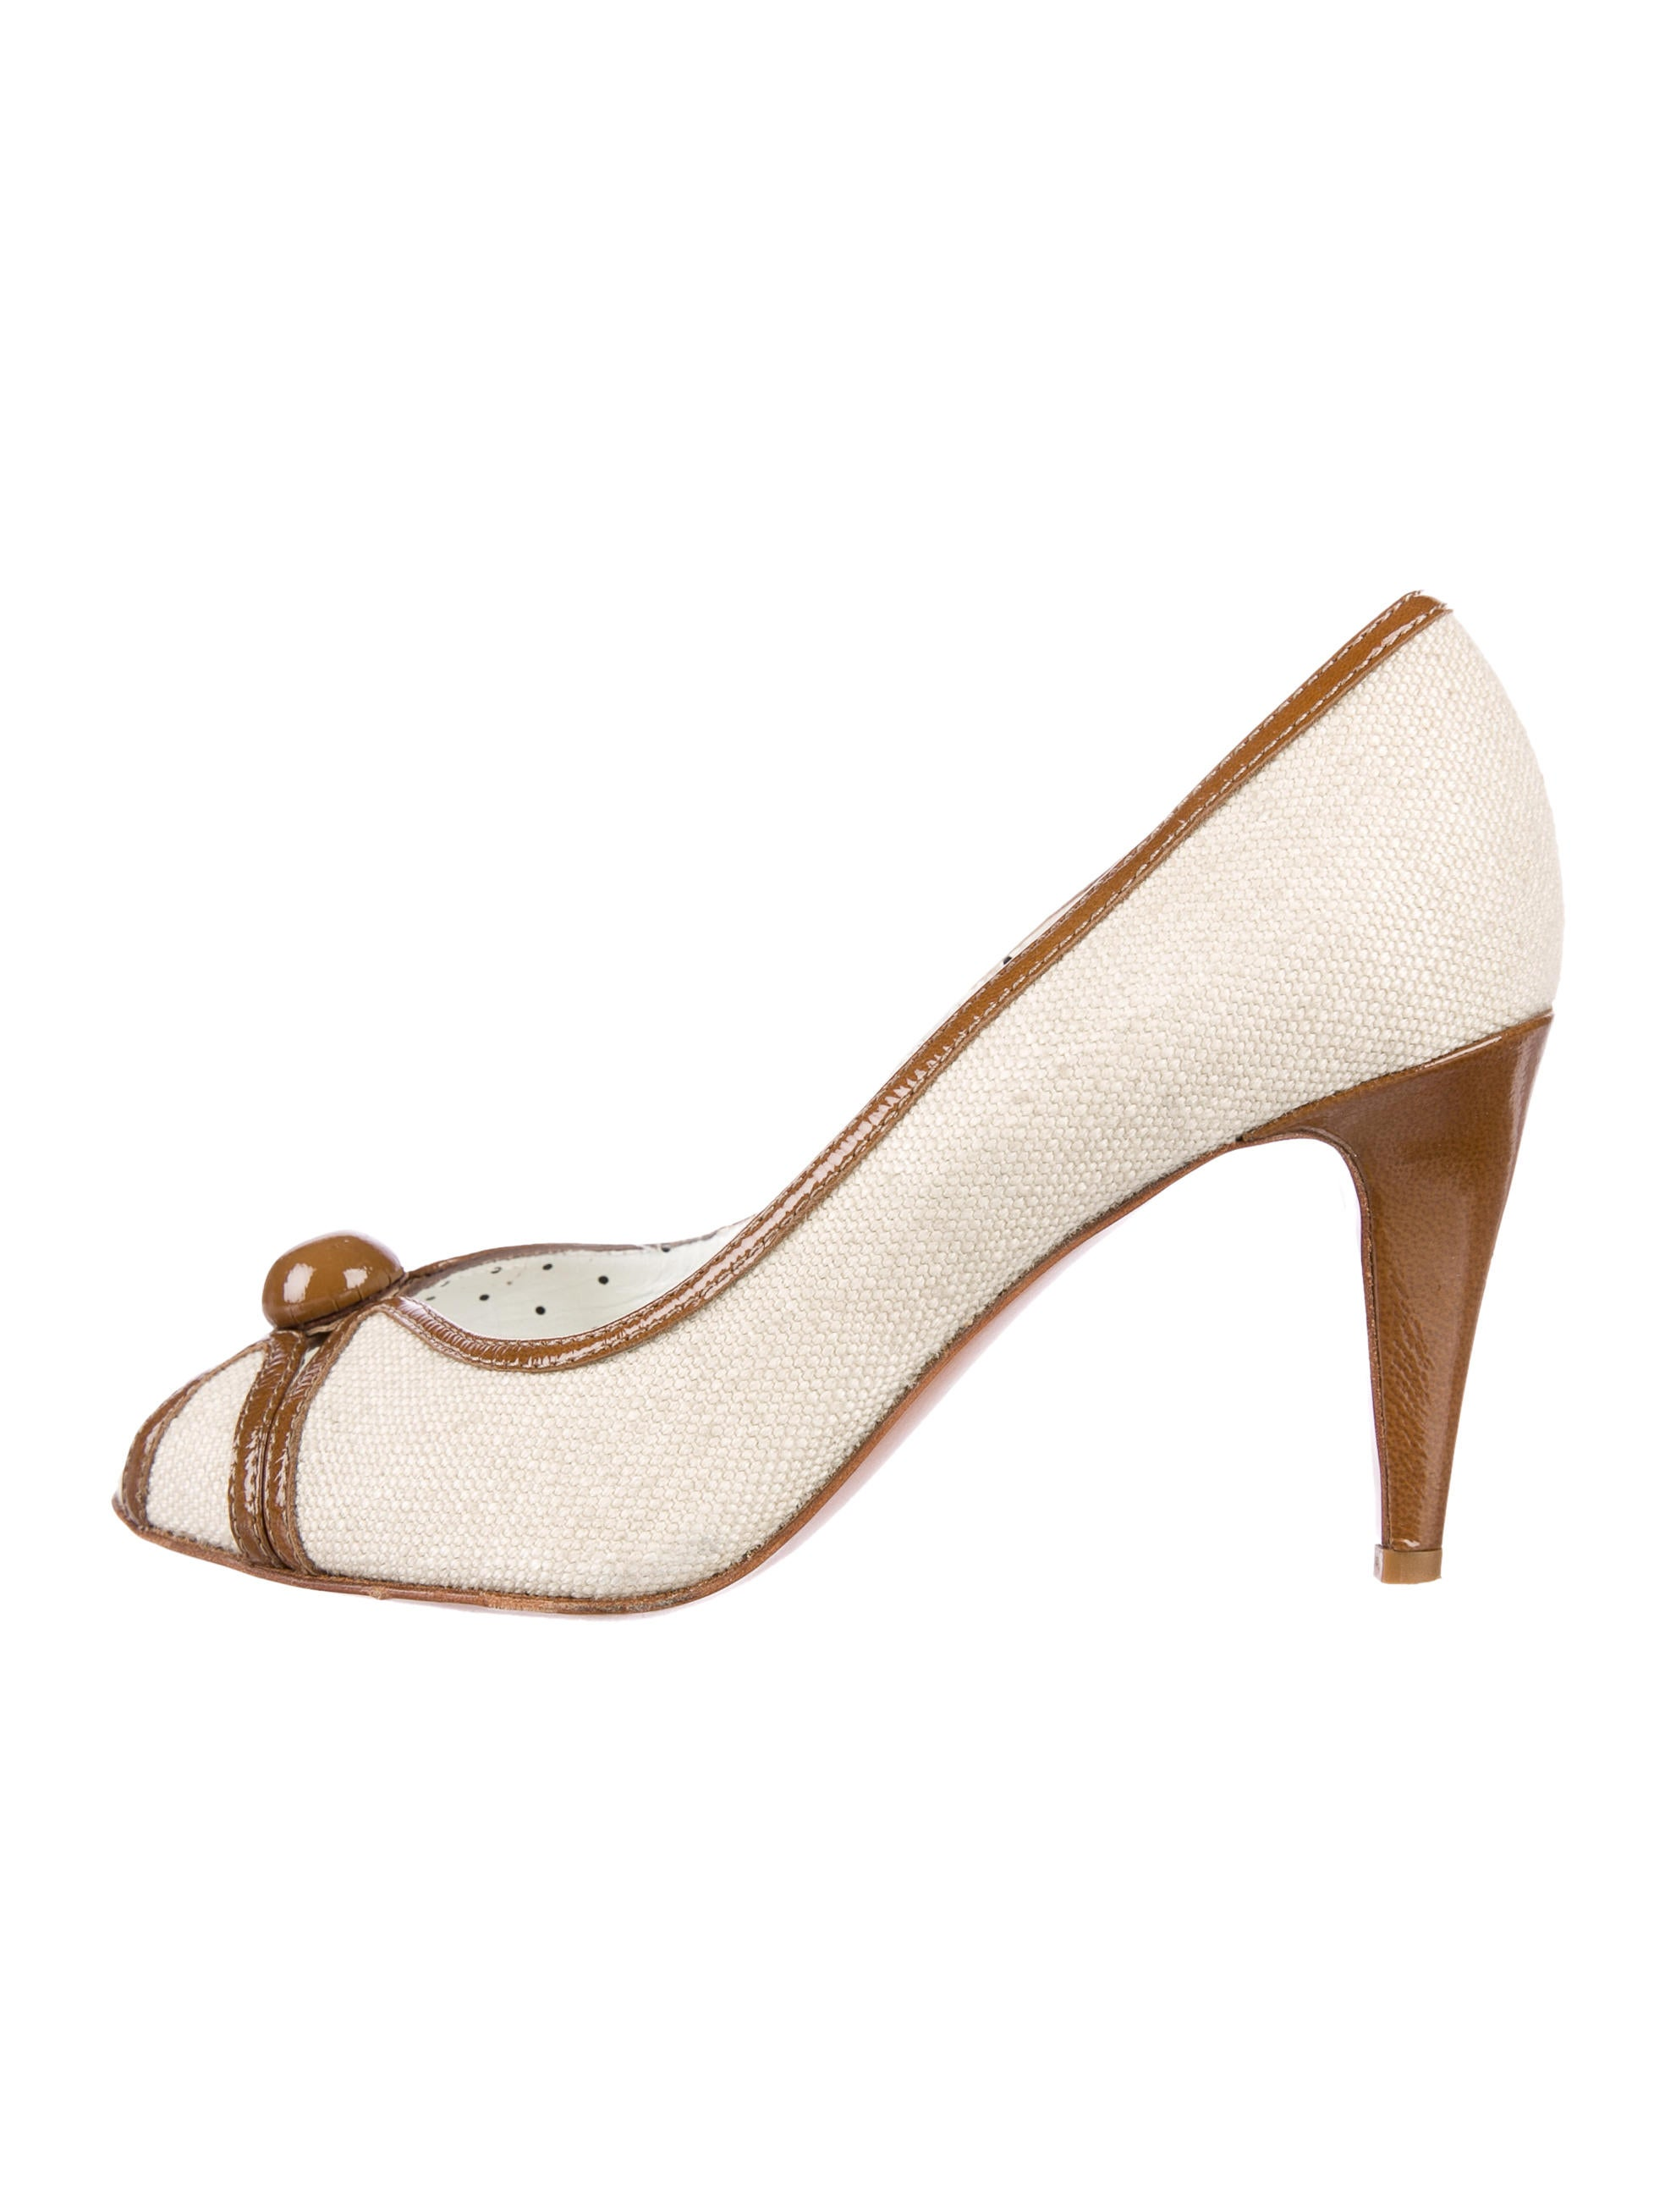 Moschino Cheap and Chic Canvas Slingback Pumps clearance 100% authentic V0UCO